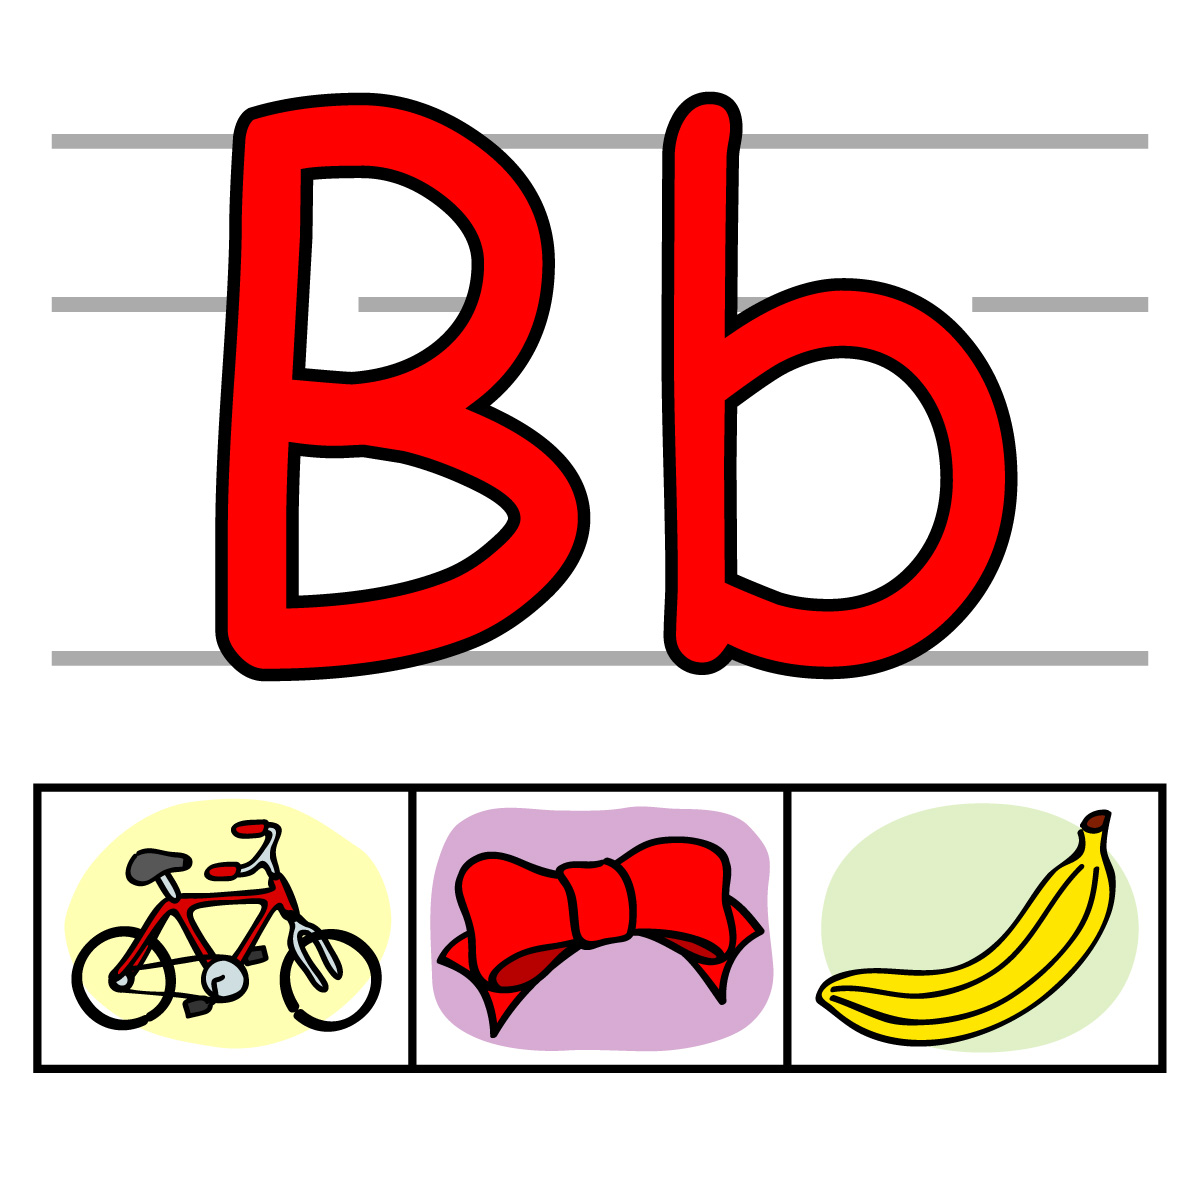 Lettering clipart alphabetical order Learning Clipart Individual cliparts Alphabet